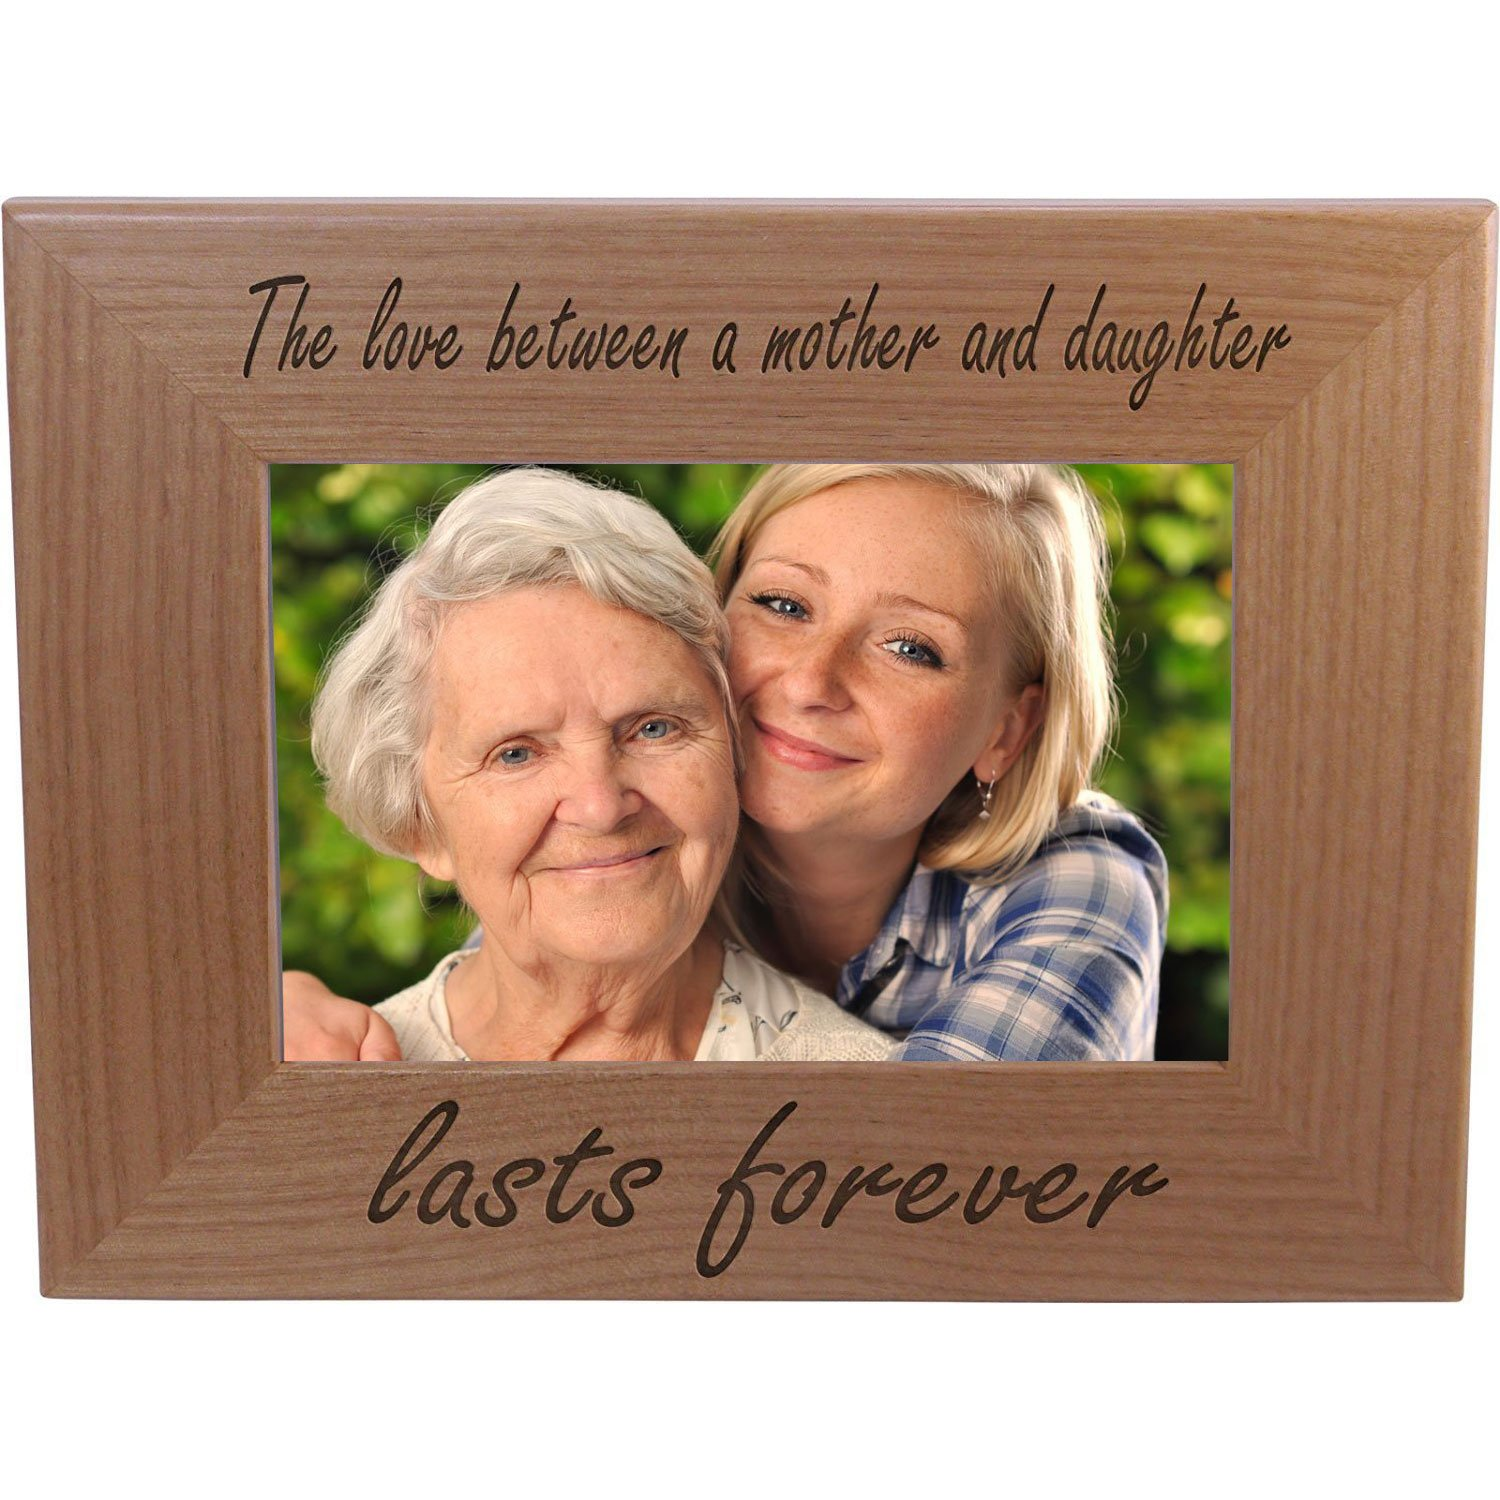 Amazon the love between a mother and son lasts forever 4x6 the love between a mother and daughter lasts forever 4x6 inch wood picture frame great jeuxipadfo Choice Image